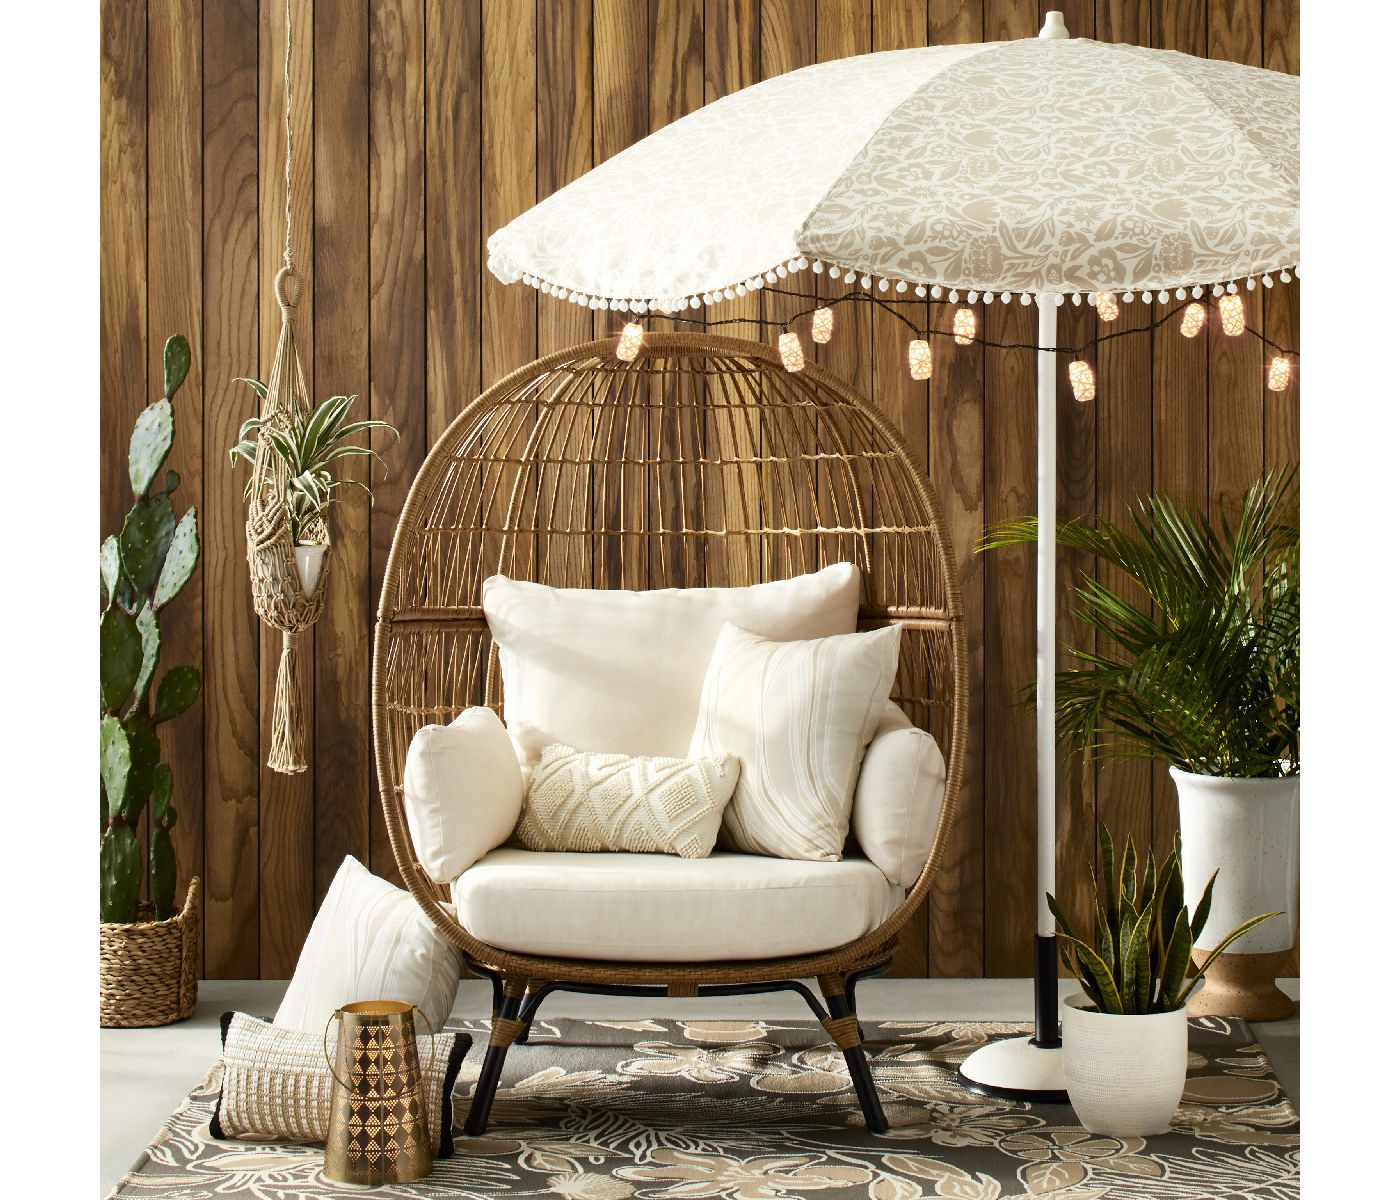 Target Southport Patio Egg Chair, Target Southport Patio Egg Chair dupes, affordable dupes for the Target Southport Patio Egg Chair, egg chair inspiration, egg chair home ideas, egg chairs, wicker egg chairs, hanging egg chairs, interior, home decor, home interior, interior styling, target dupes, patio furniture, patio furniture inspiration, Jennifer Worman, Red Soles and Red Wine